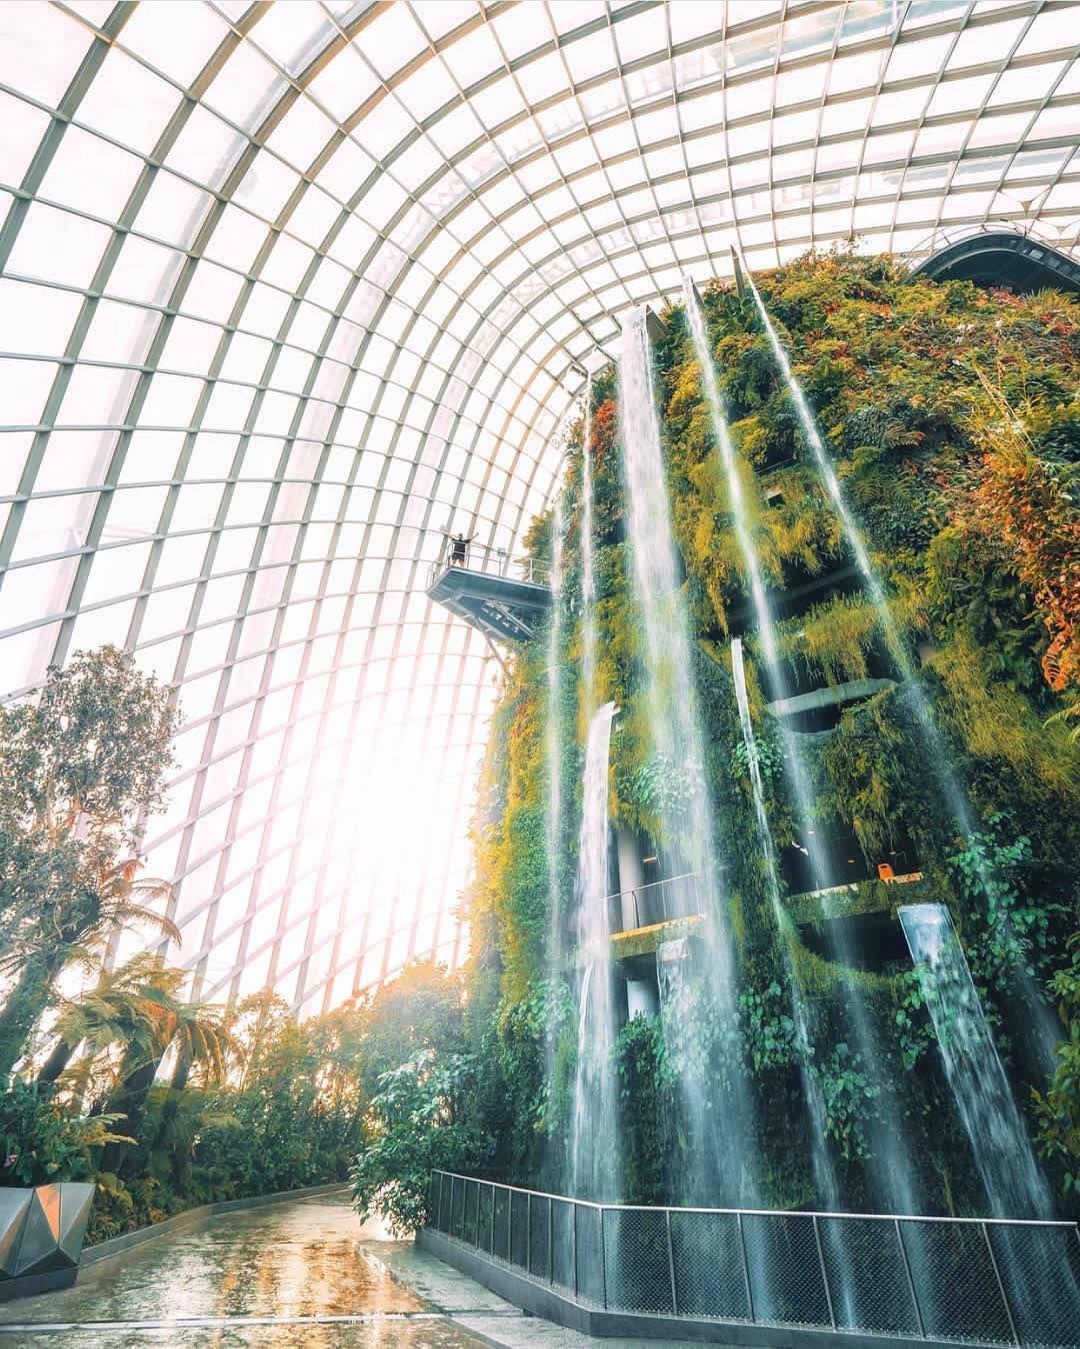 Garden By The Bay Singapore Picture By Timothysykes Go Follow This Self Made Millionaire Who Travels The World While Teaching